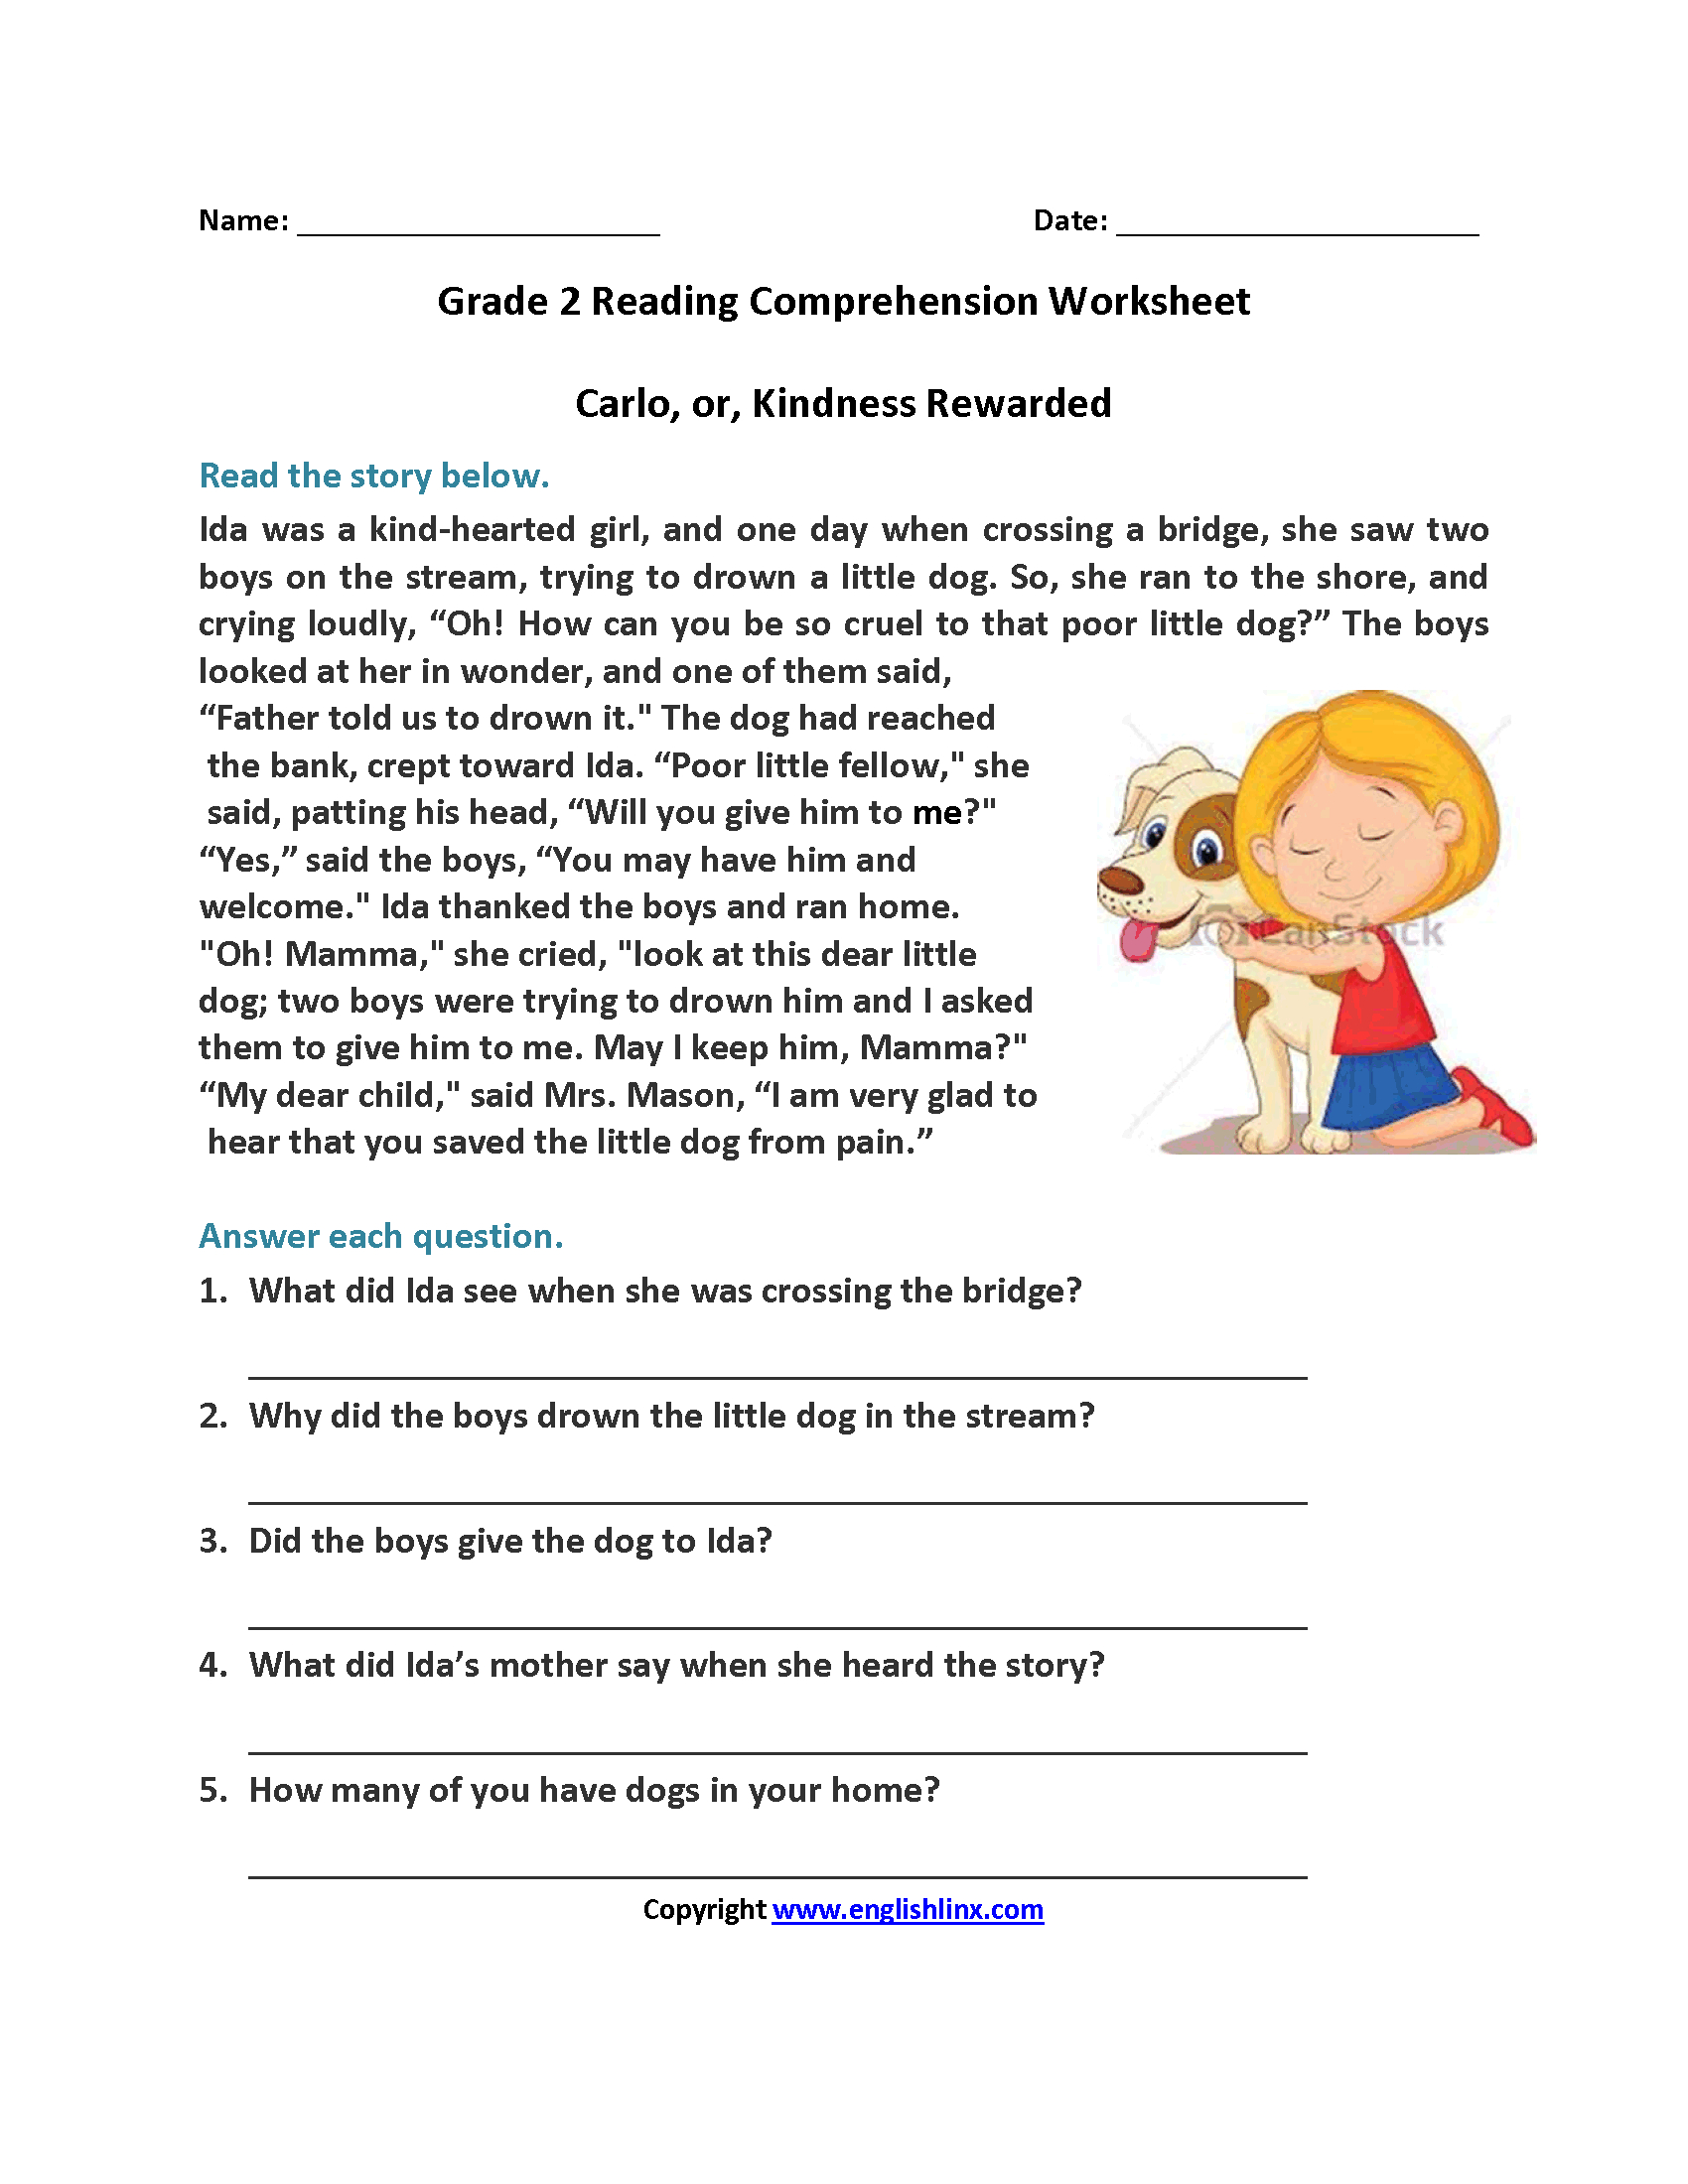 Carlo Or Kindness Rewarded Second Grade Reading Worksheets | Reading | Printable Comprehension Worksheets For Grade 3